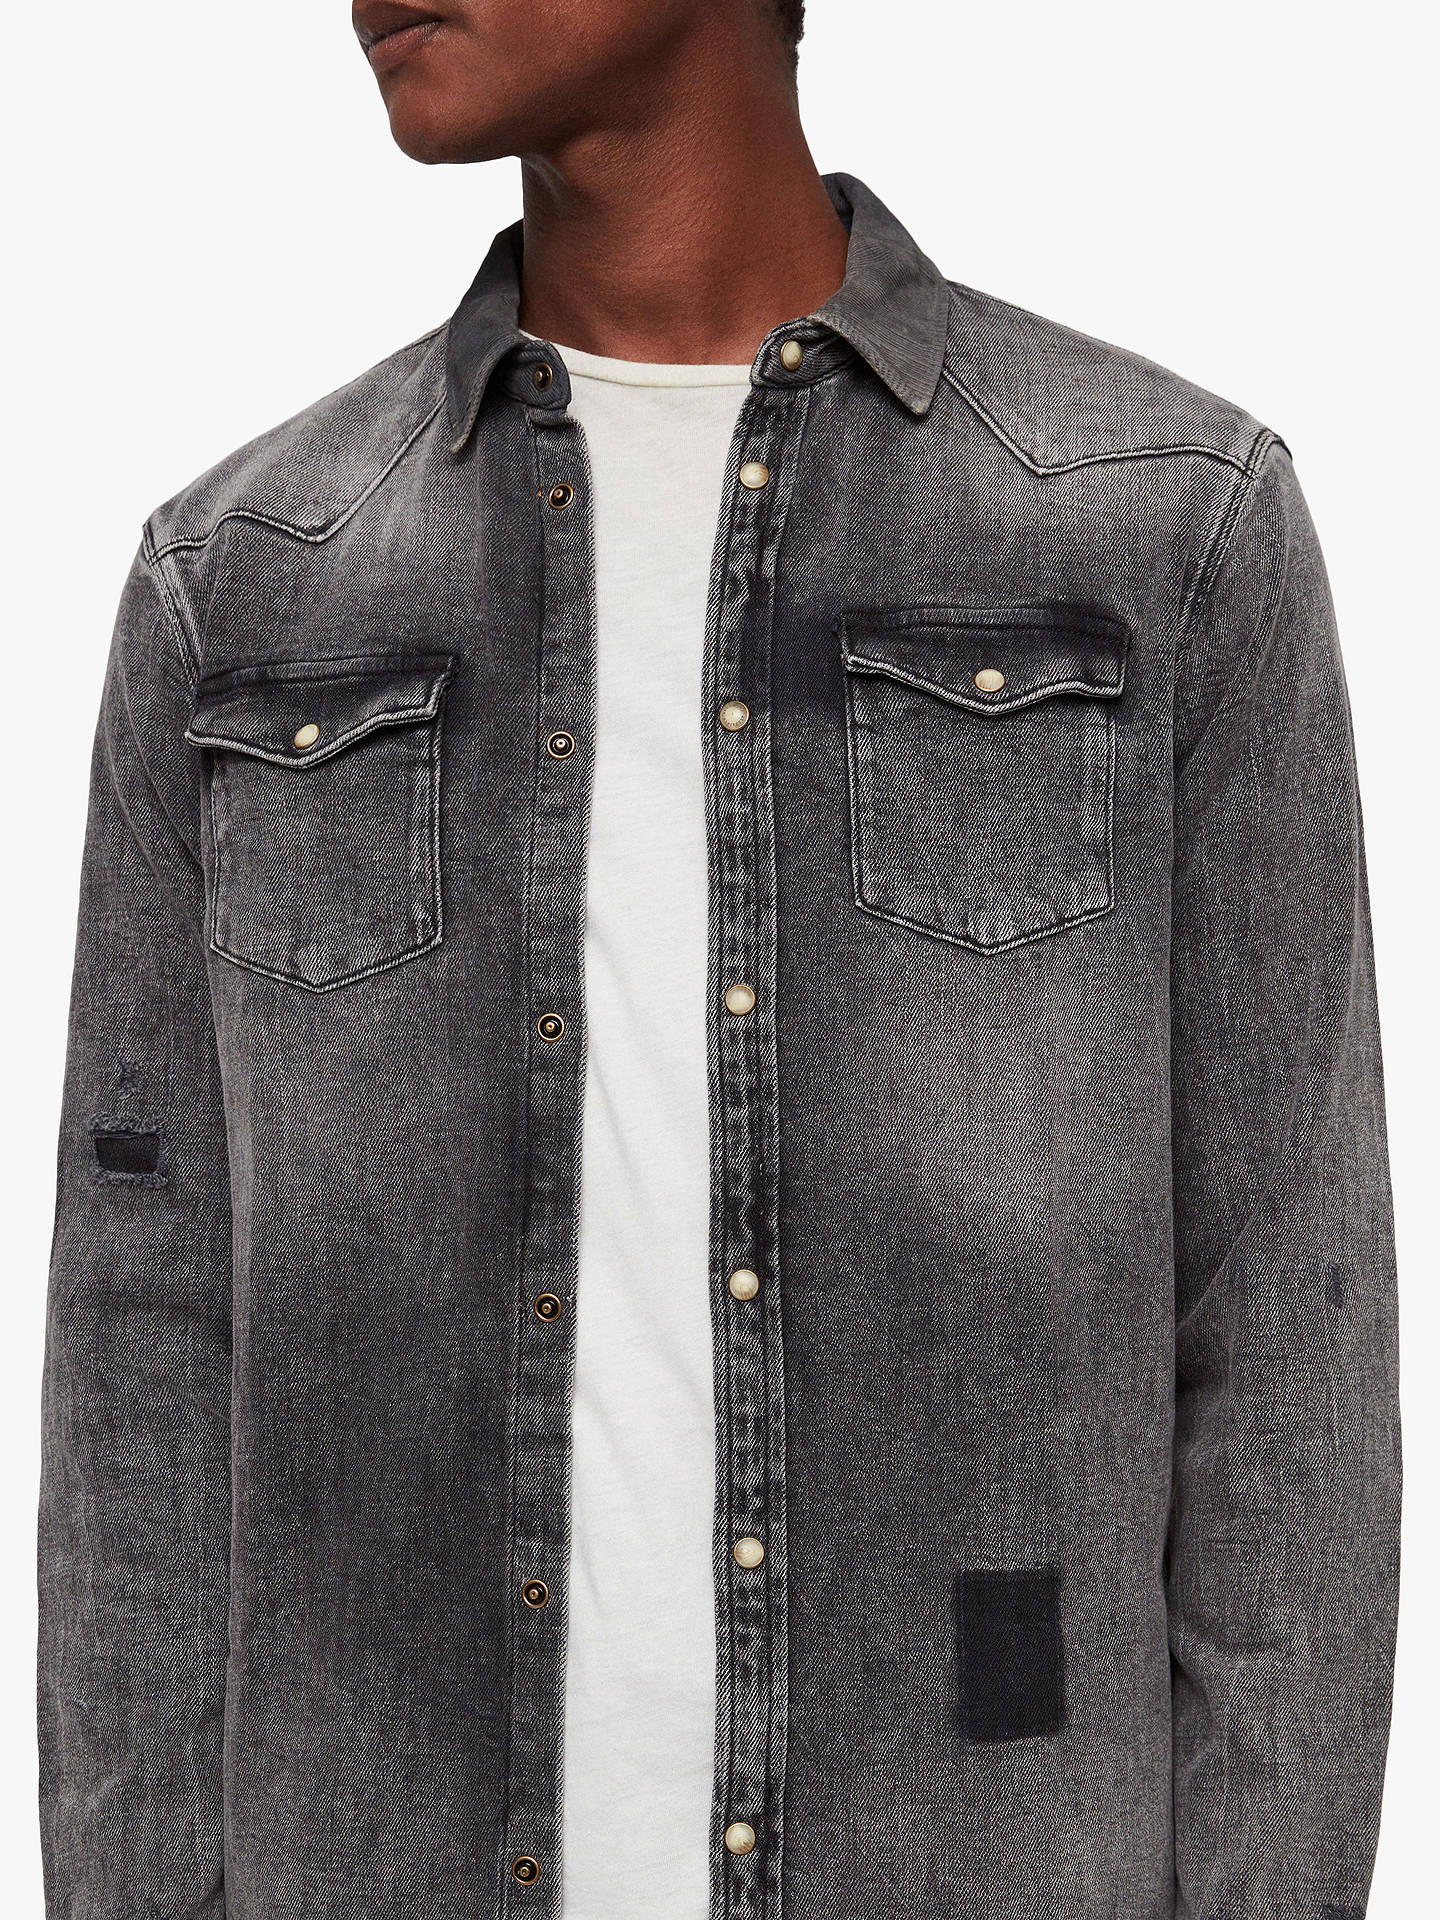 BuyAllSaints Glockeley Shirt, Indigo, L Online at johnlewis.com